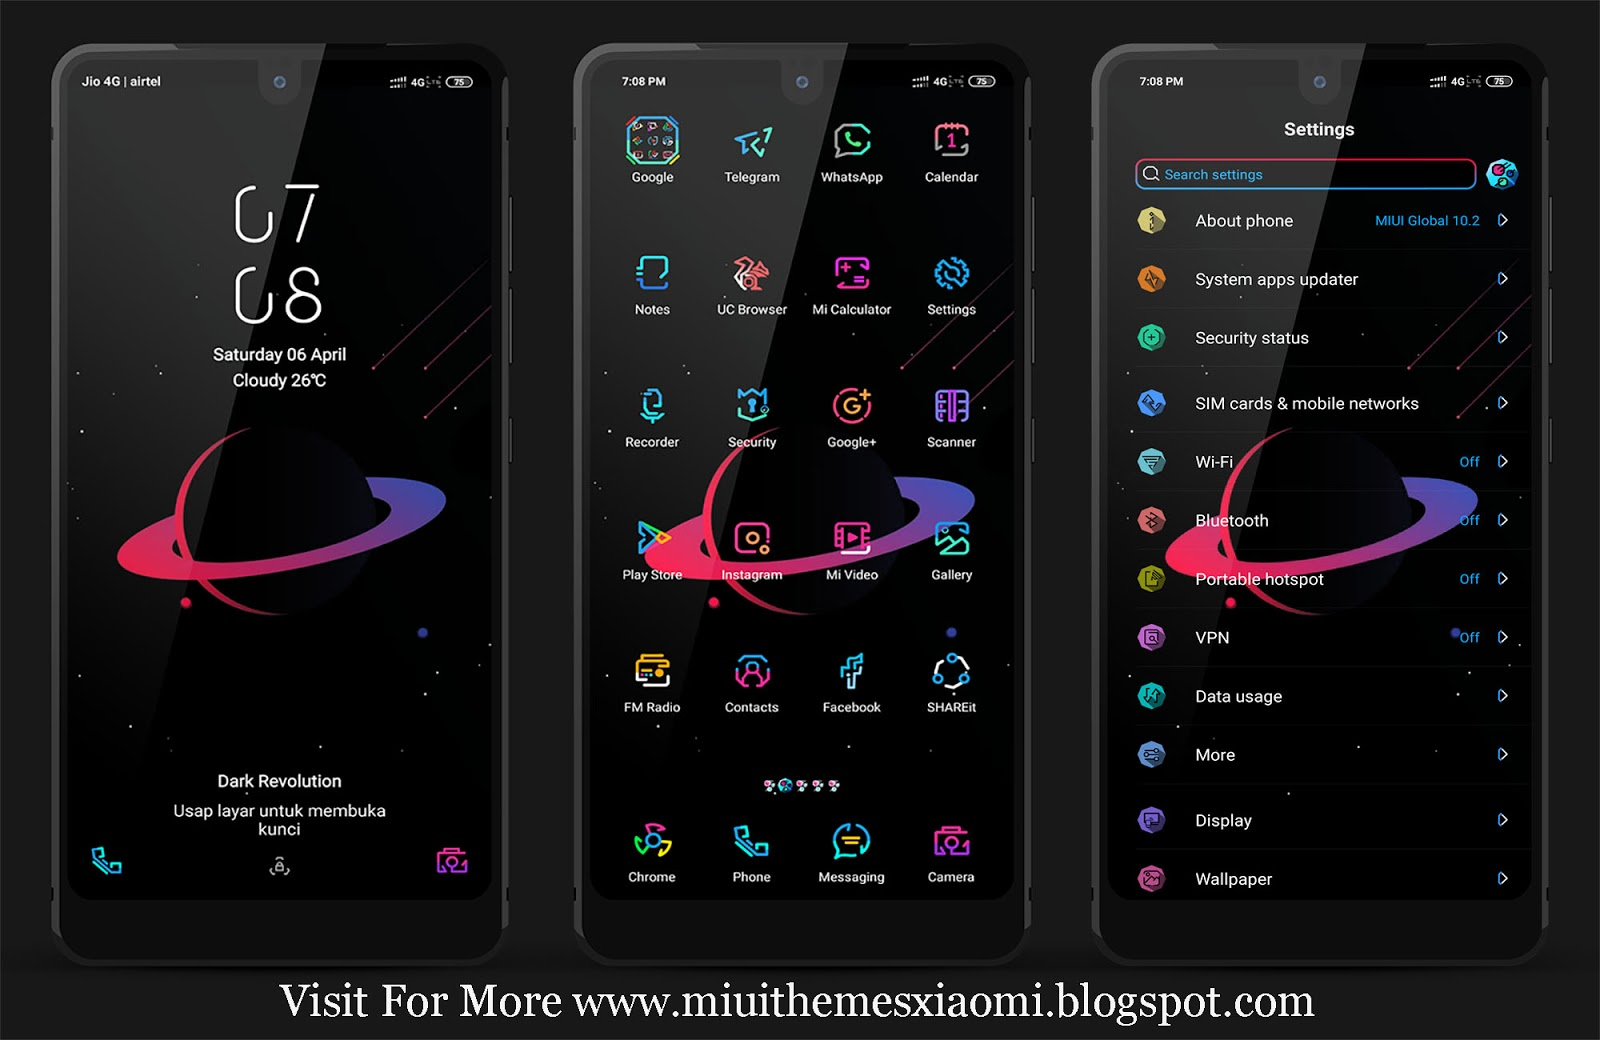 Dark Revolution V10 MIUI Theme Download For Xiaomi Mobile